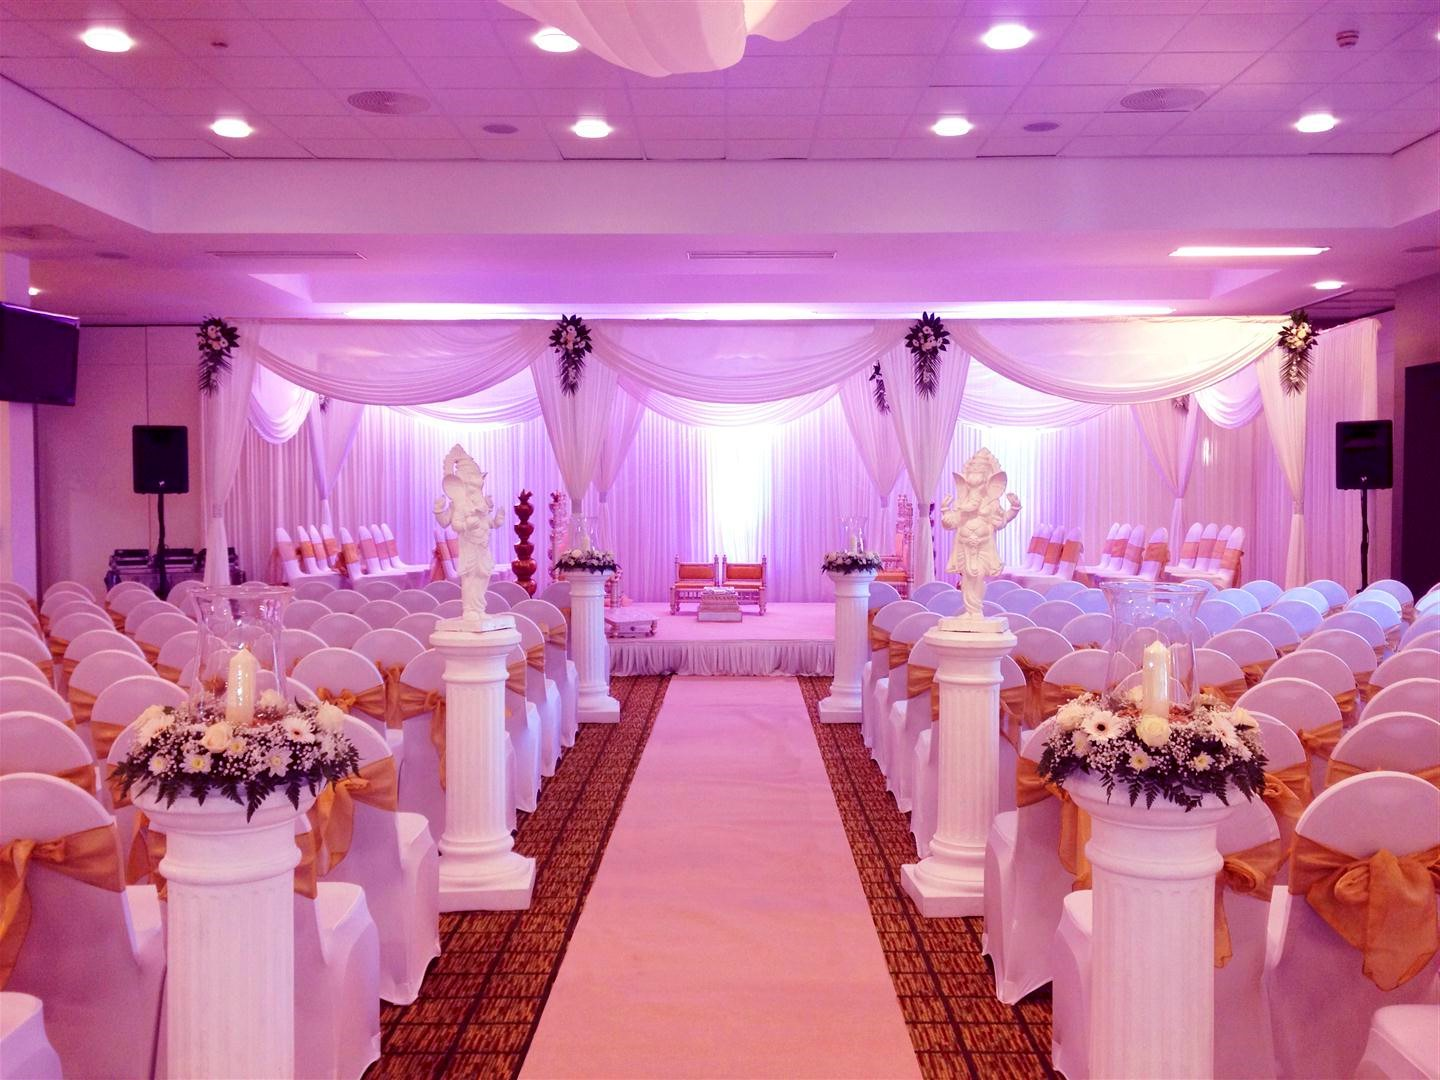 Wedding interior decoration for Hotel wedding decor